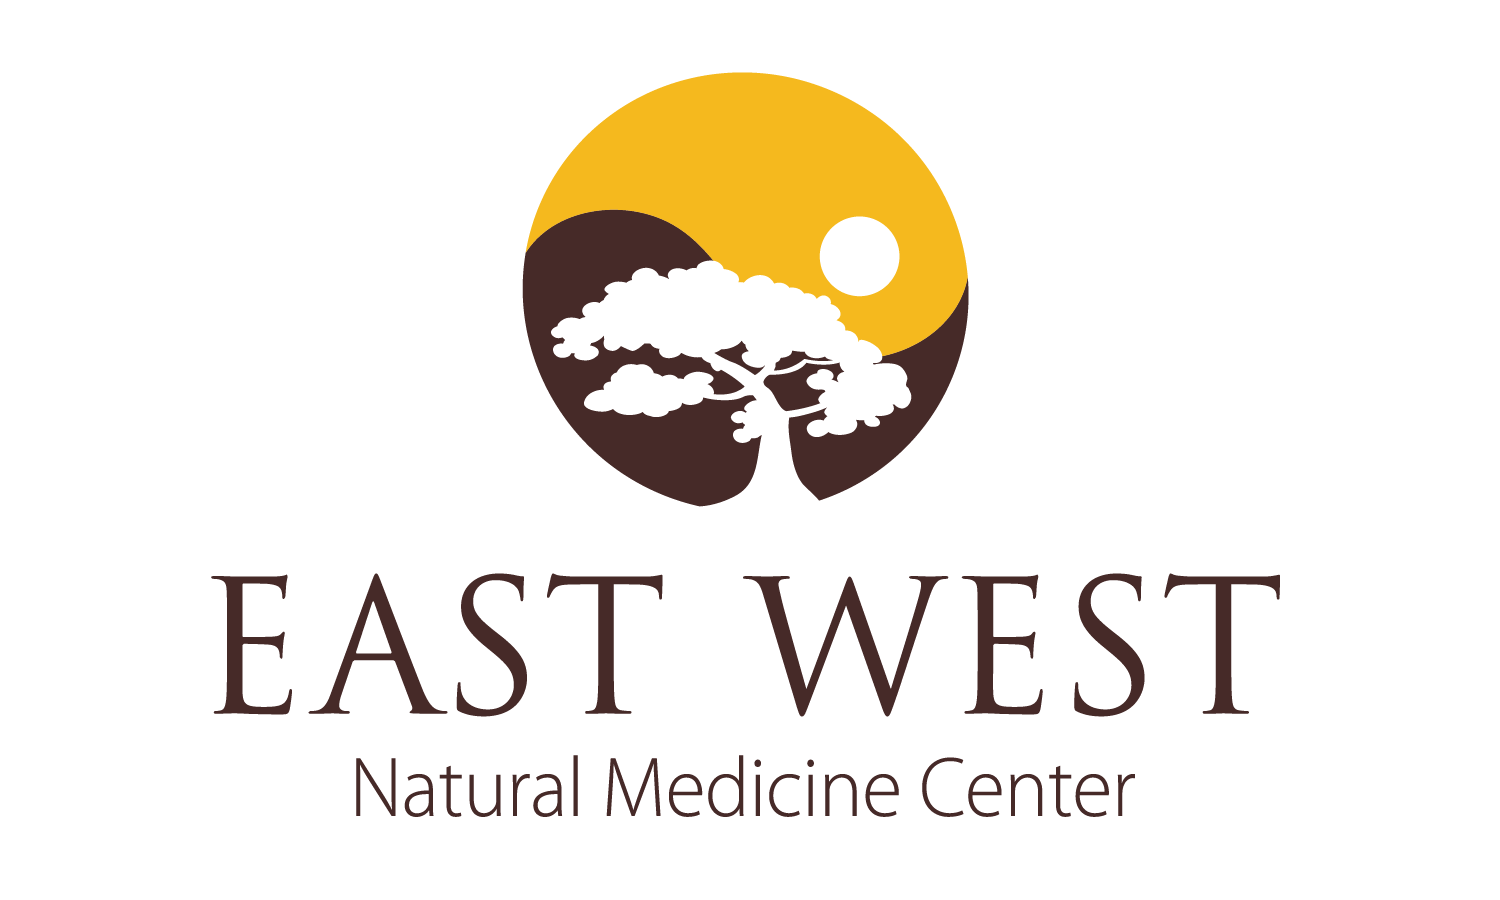 East West Natural Medicine